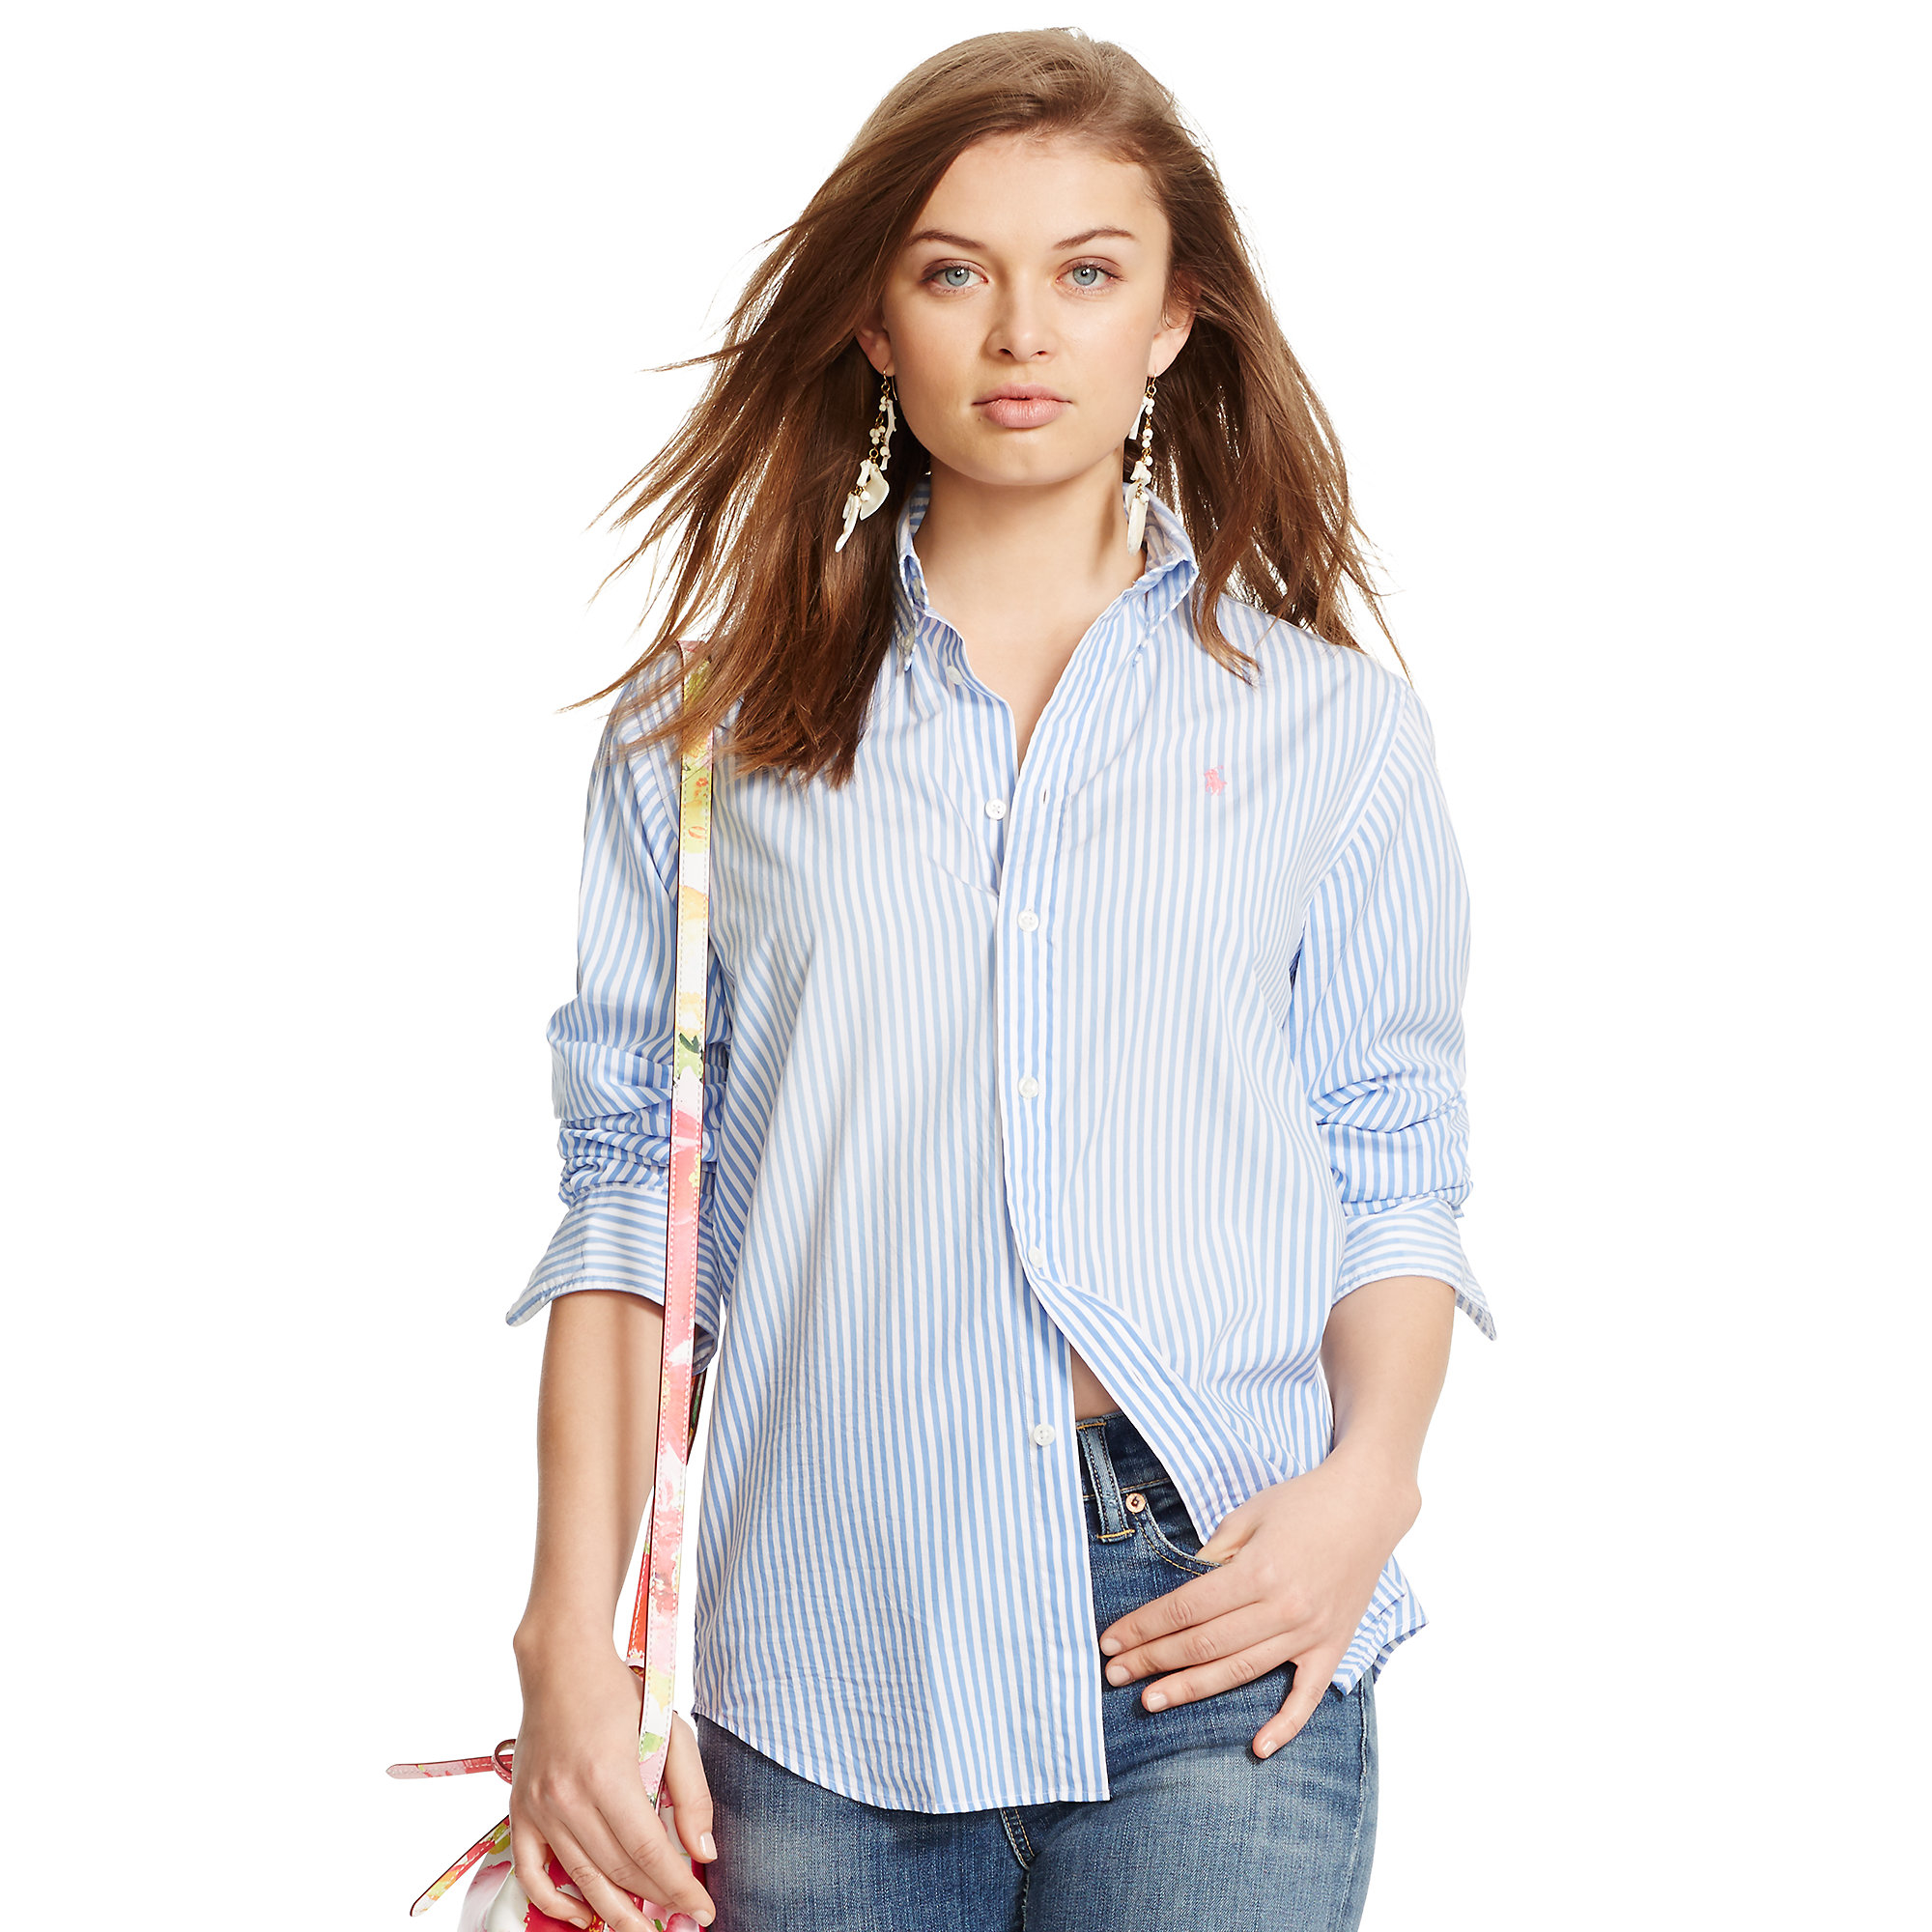 701ea6a8 Polo Ralph Lauren Relaxed-fit Striped Shirt in Blue - Lyst